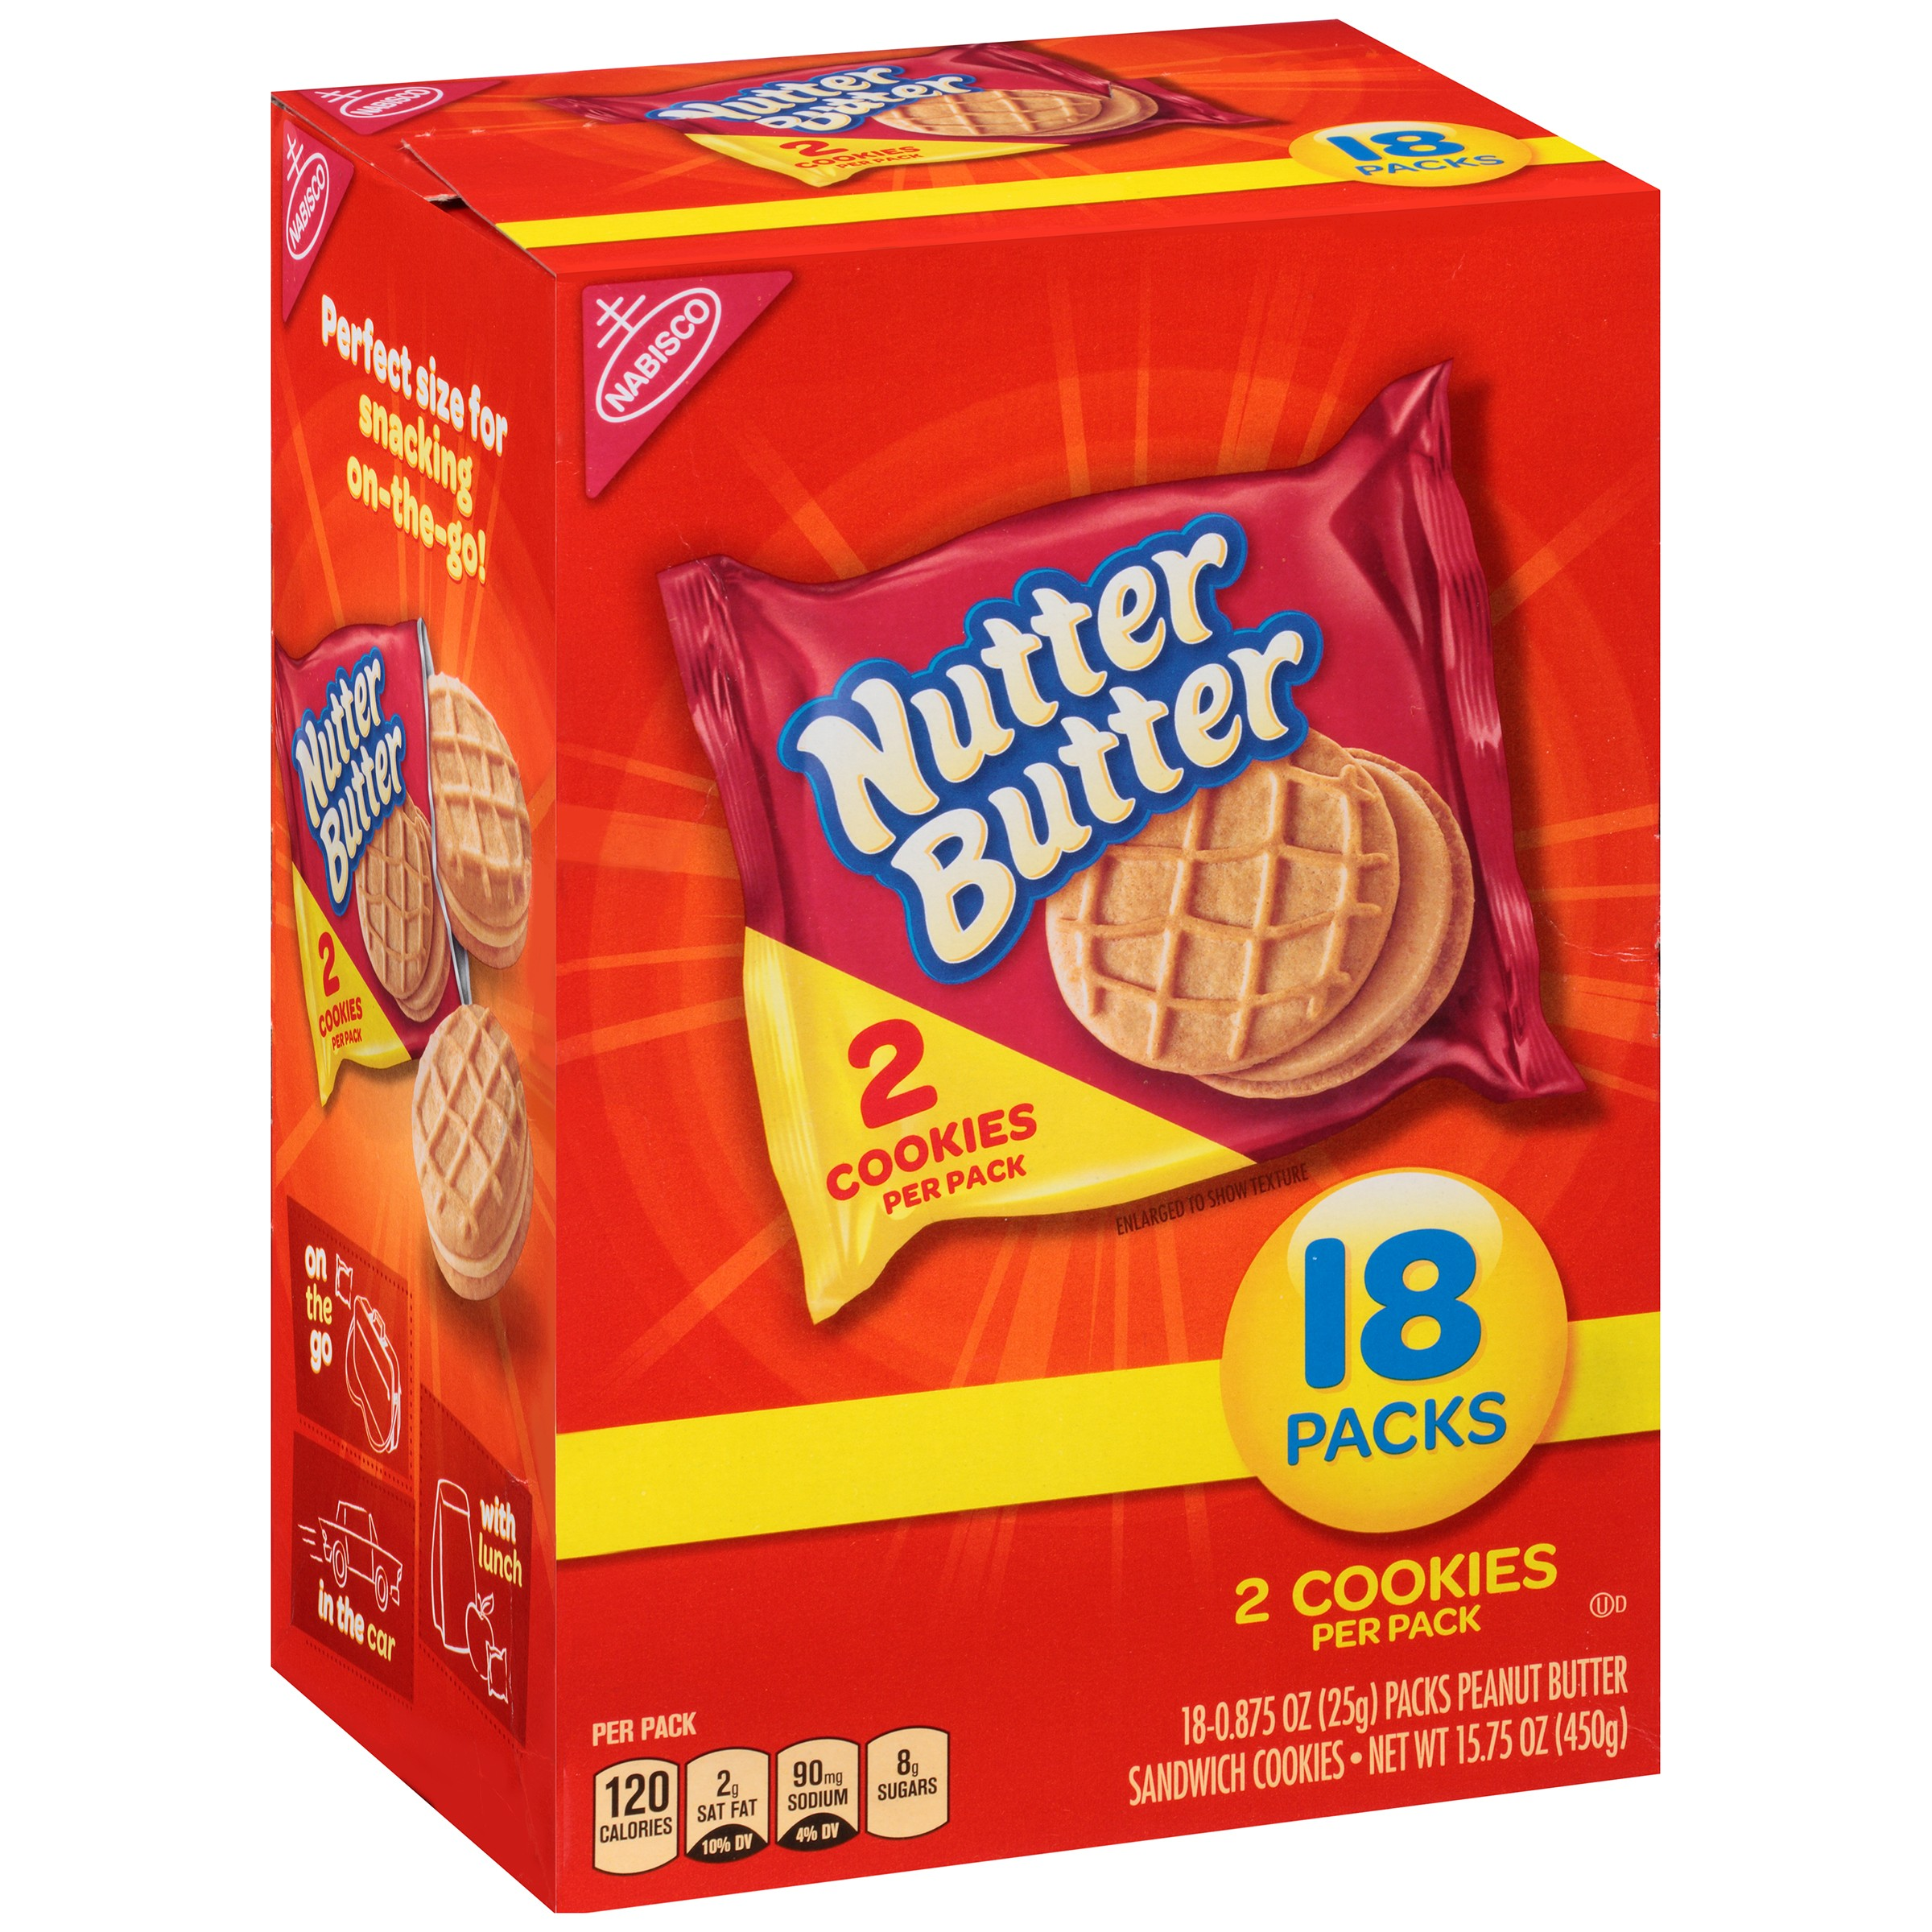 Nabisco Nutter Butter Cookies - 18 PK, 0.875 OZ